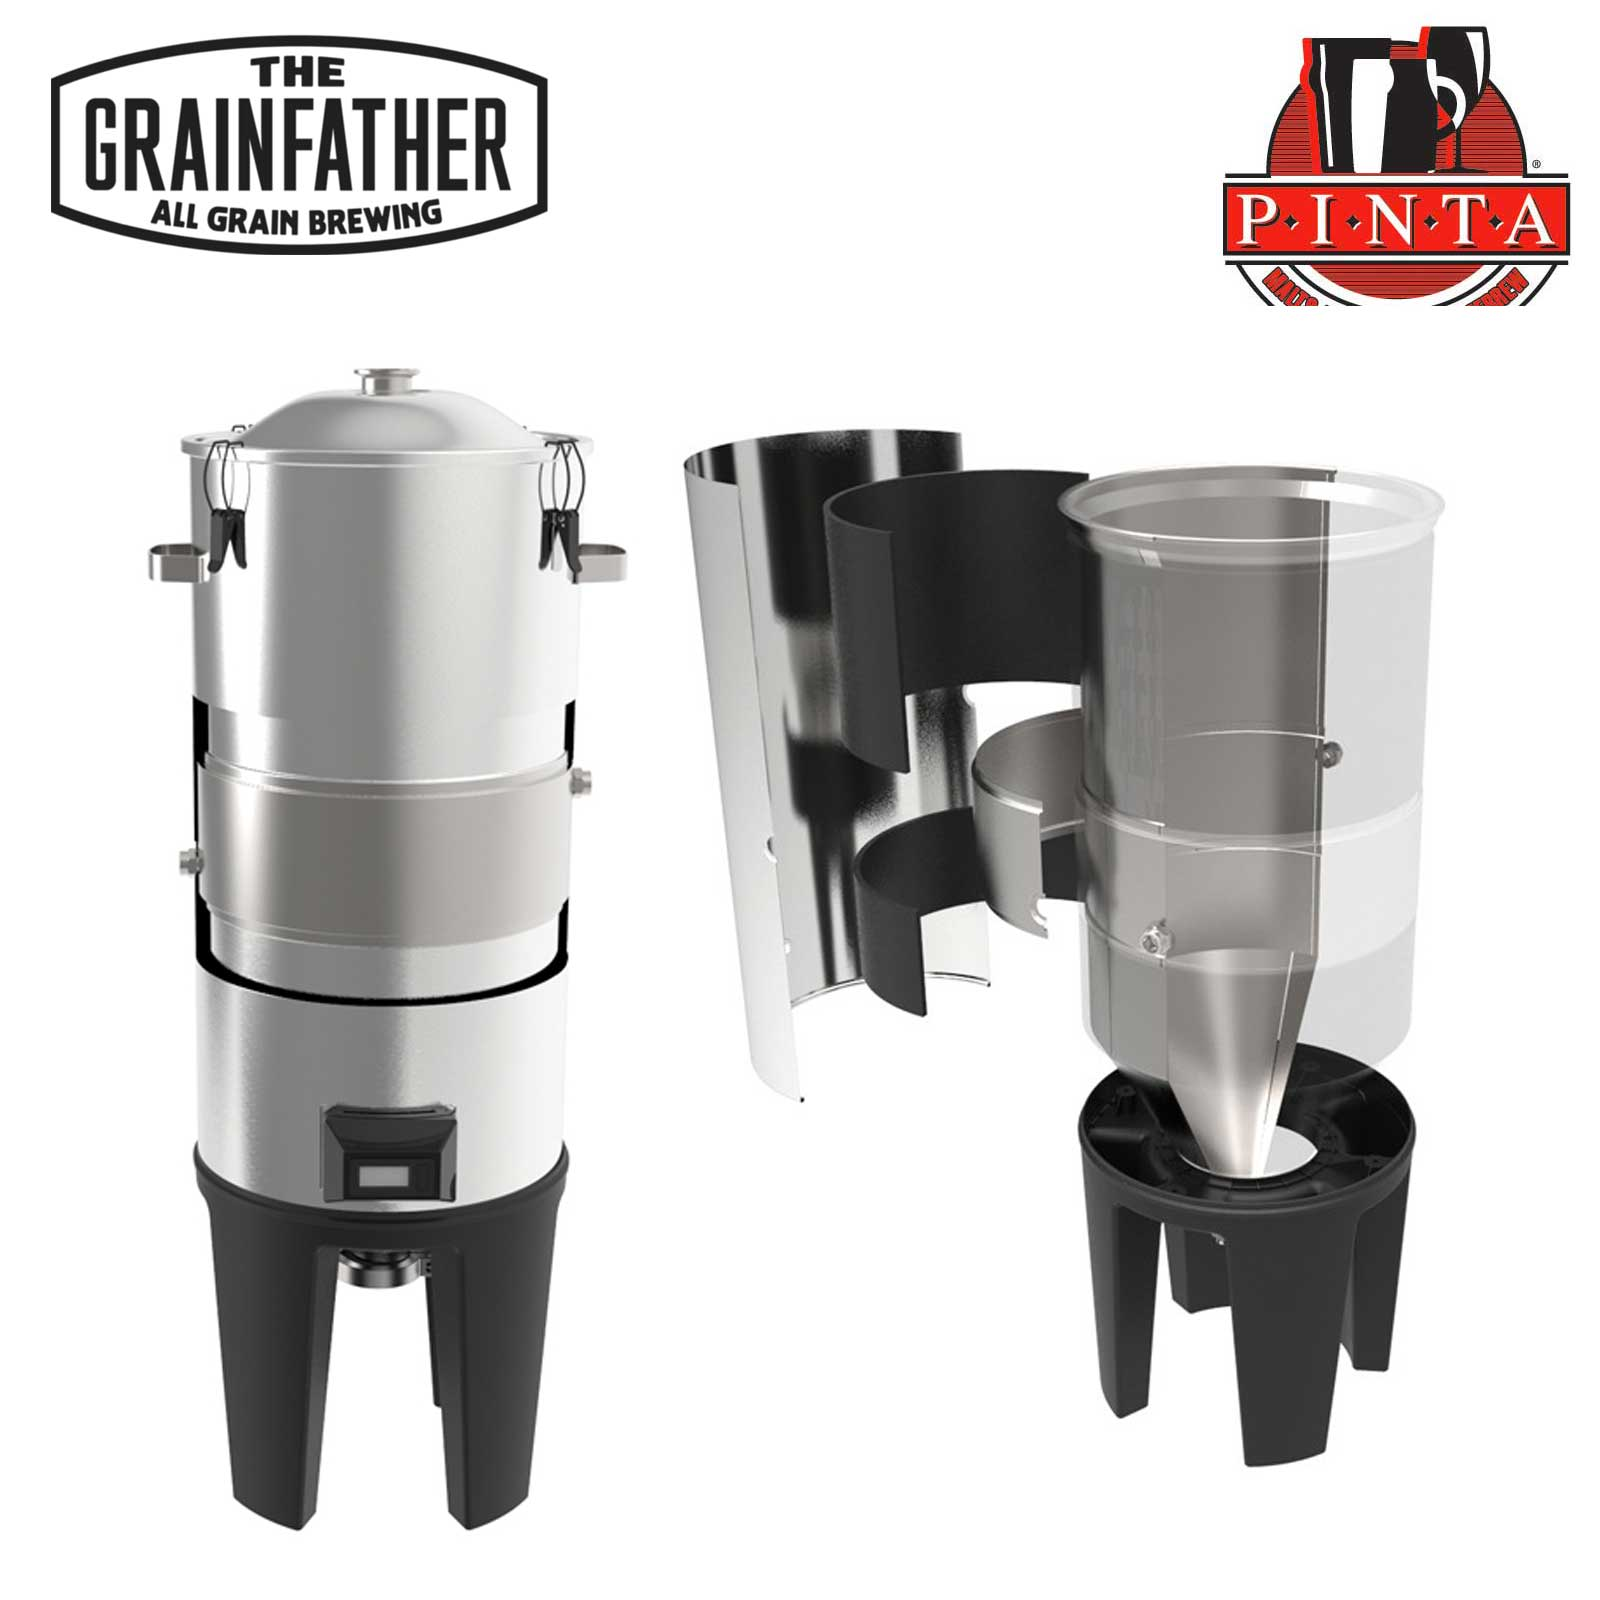 Kit fermentatore Grainfather + Glycol Chiller controllo temperatura